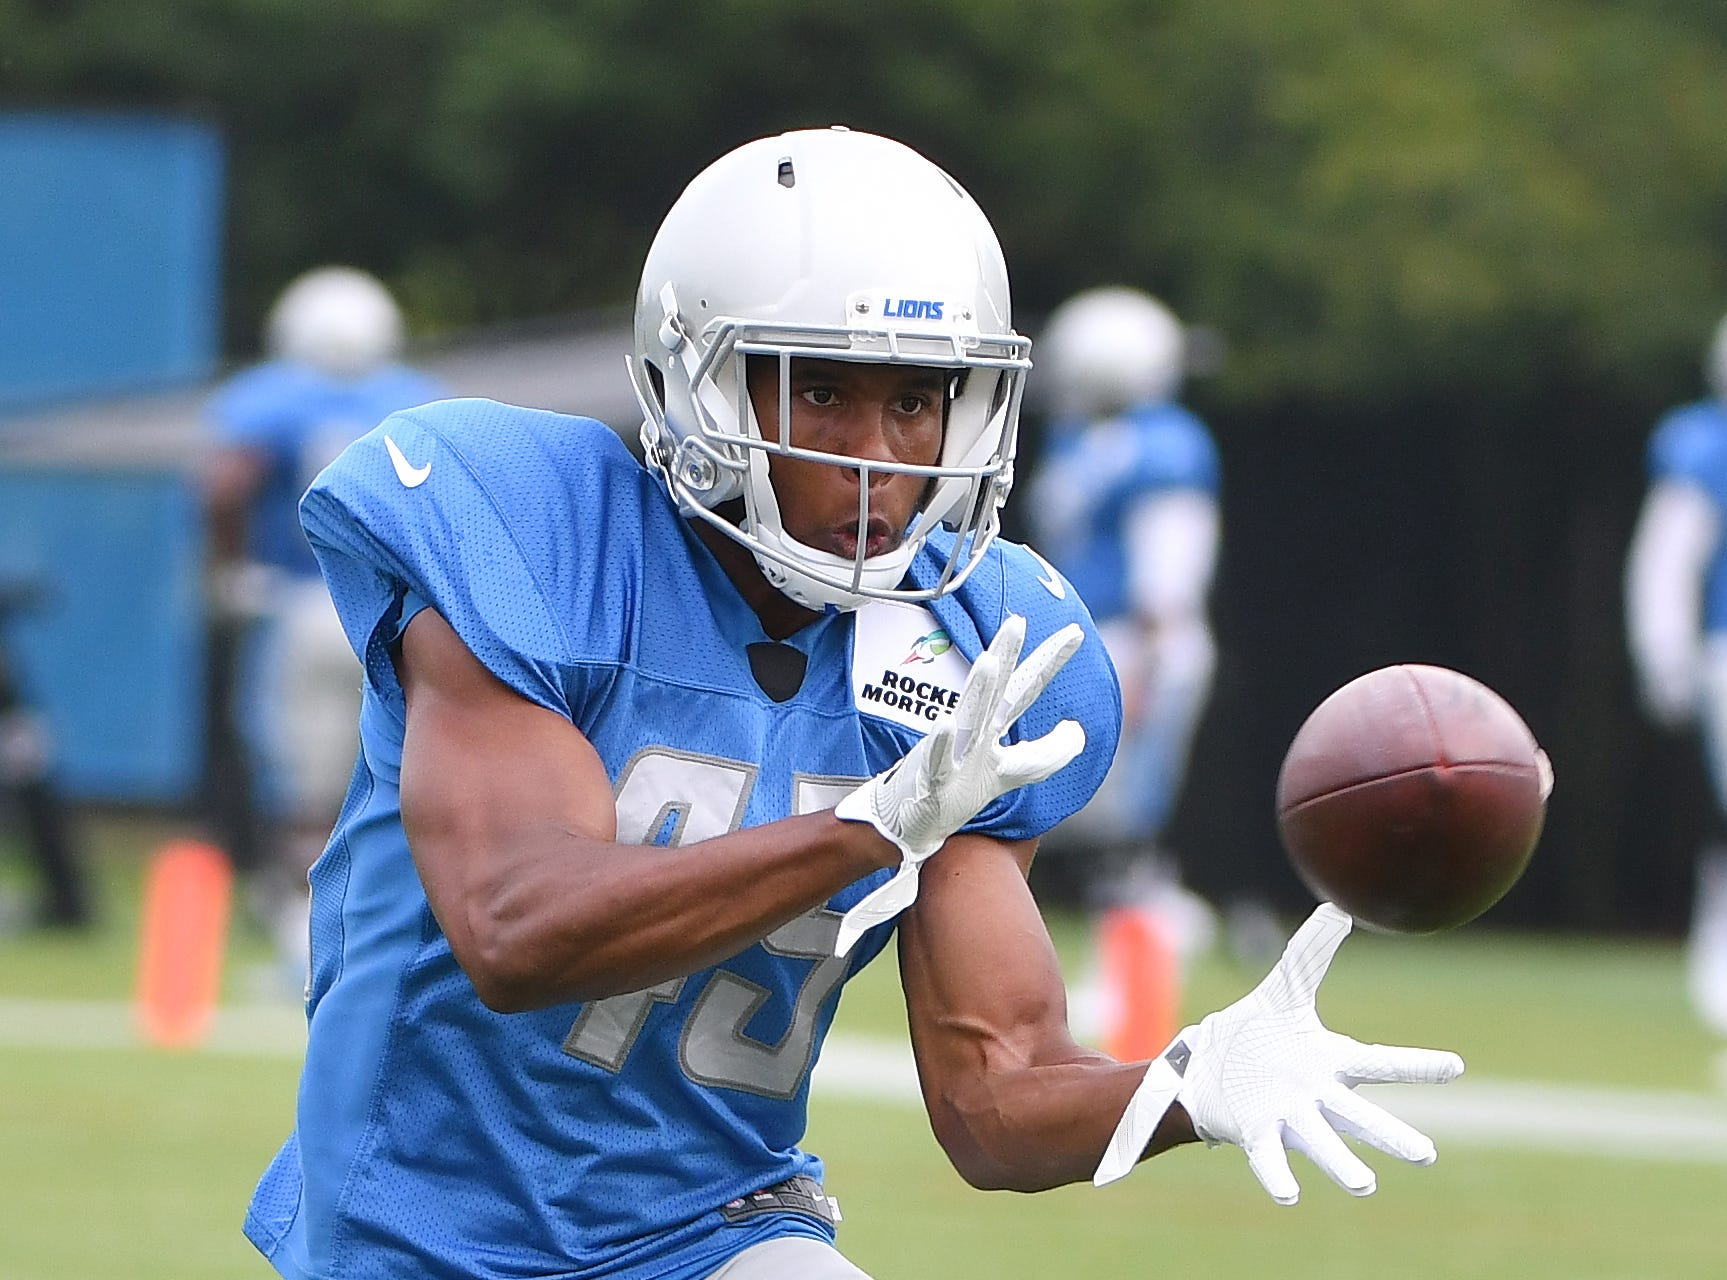 Lions safety Charles Washington pulls in a reception during drills